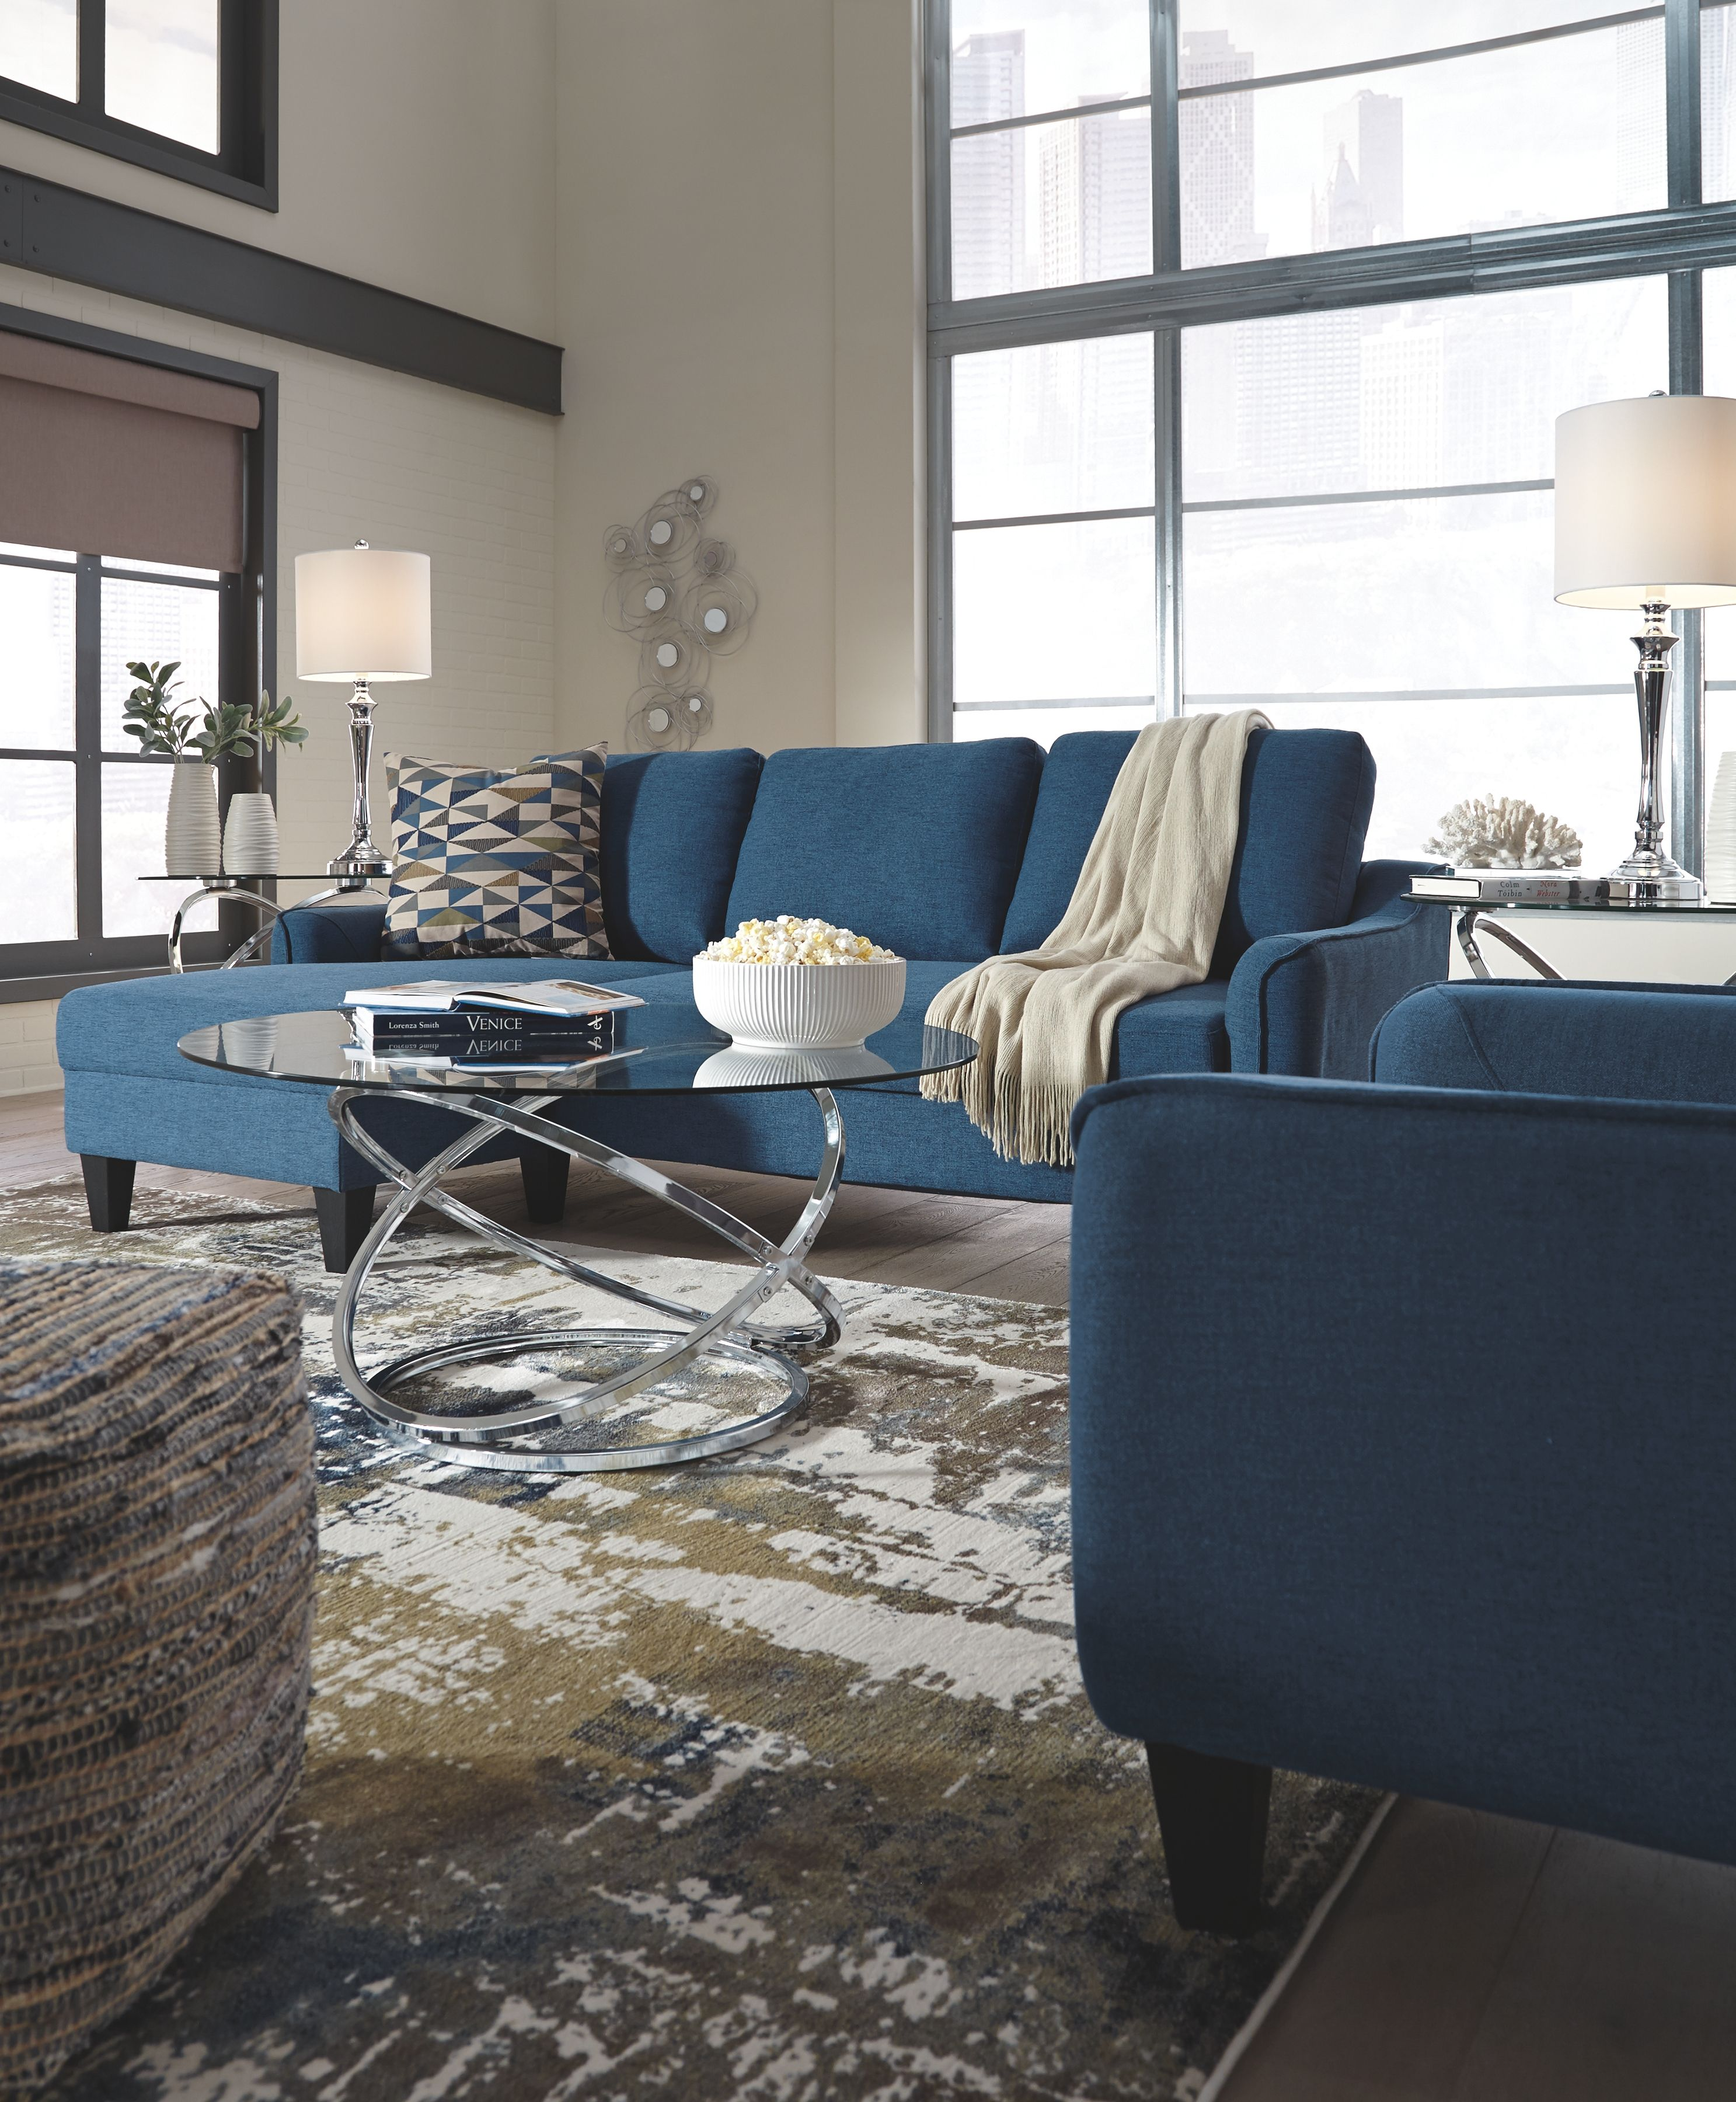 Remarkable Jarreau Sofa Chaise Sleeper Blue Products In 2019 Gmtry Best Dining Table And Chair Ideas Images Gmtryco